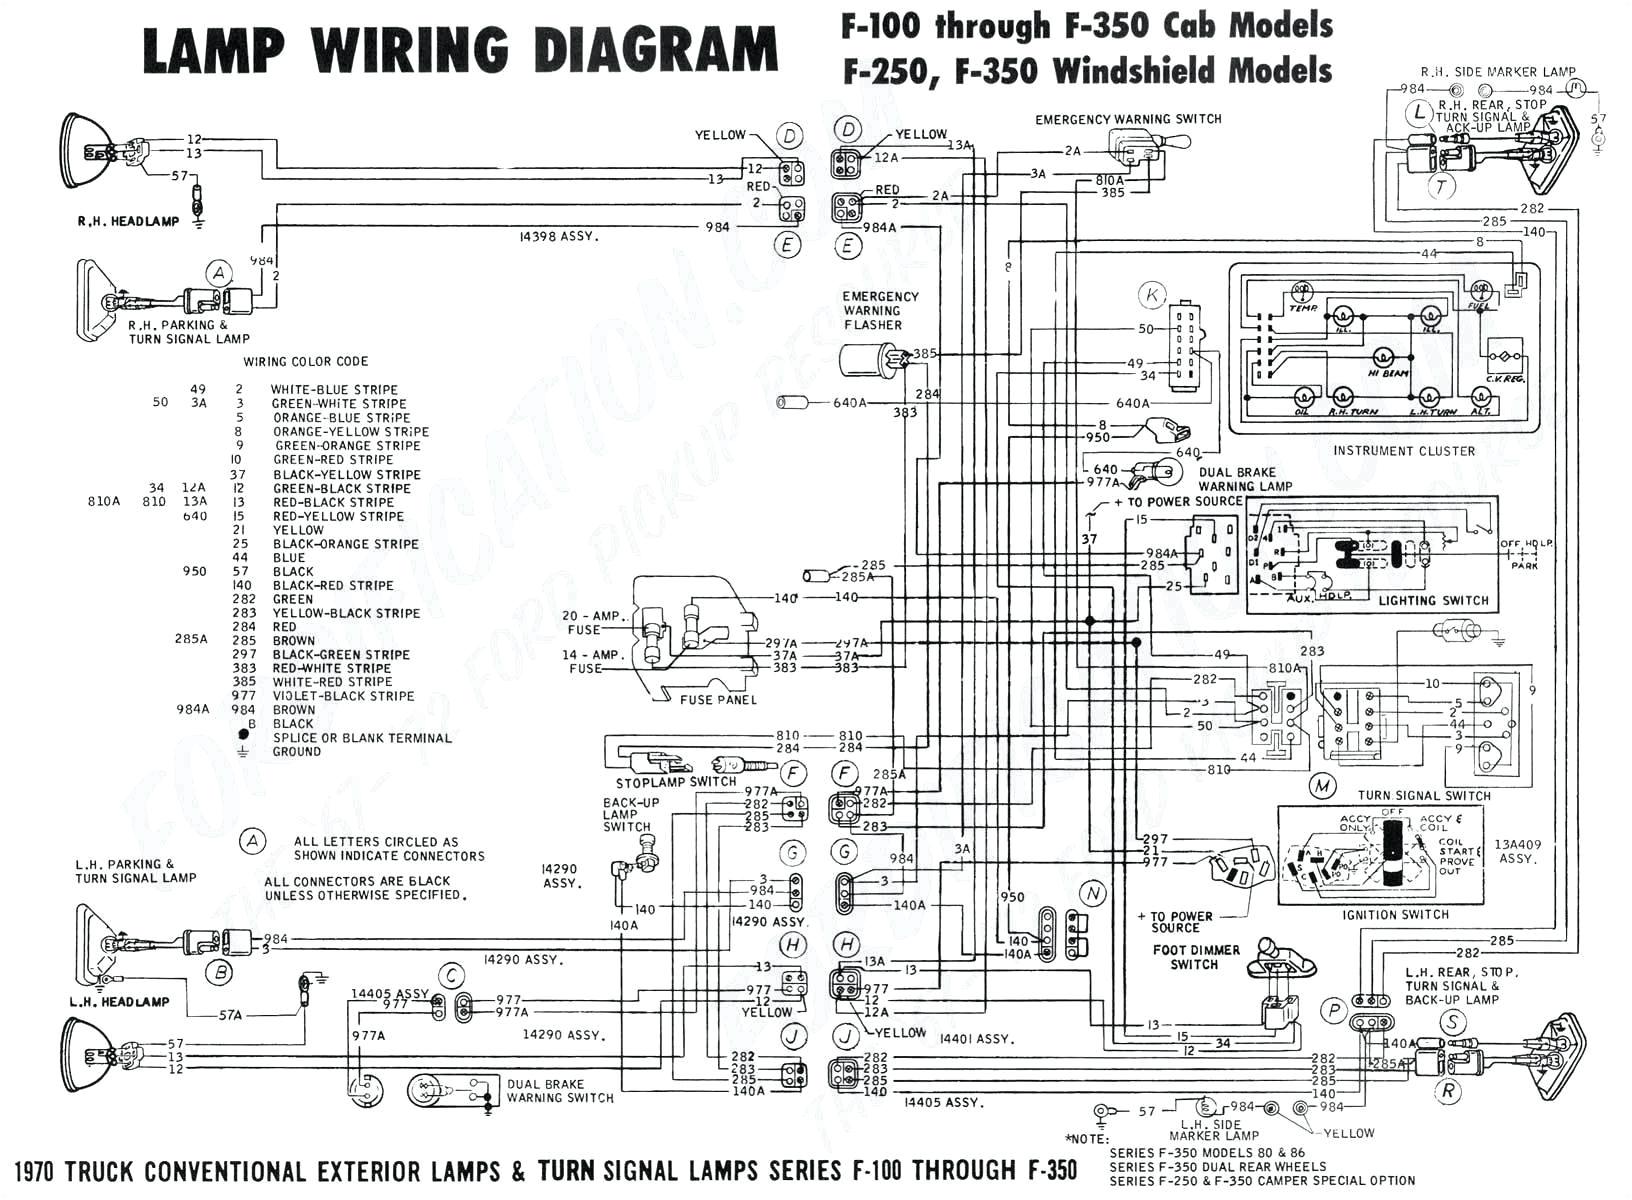 wiring diagram for 2002 honda accord search wiring diagram 1994 honda accord exhaust system diagram wiring schematic